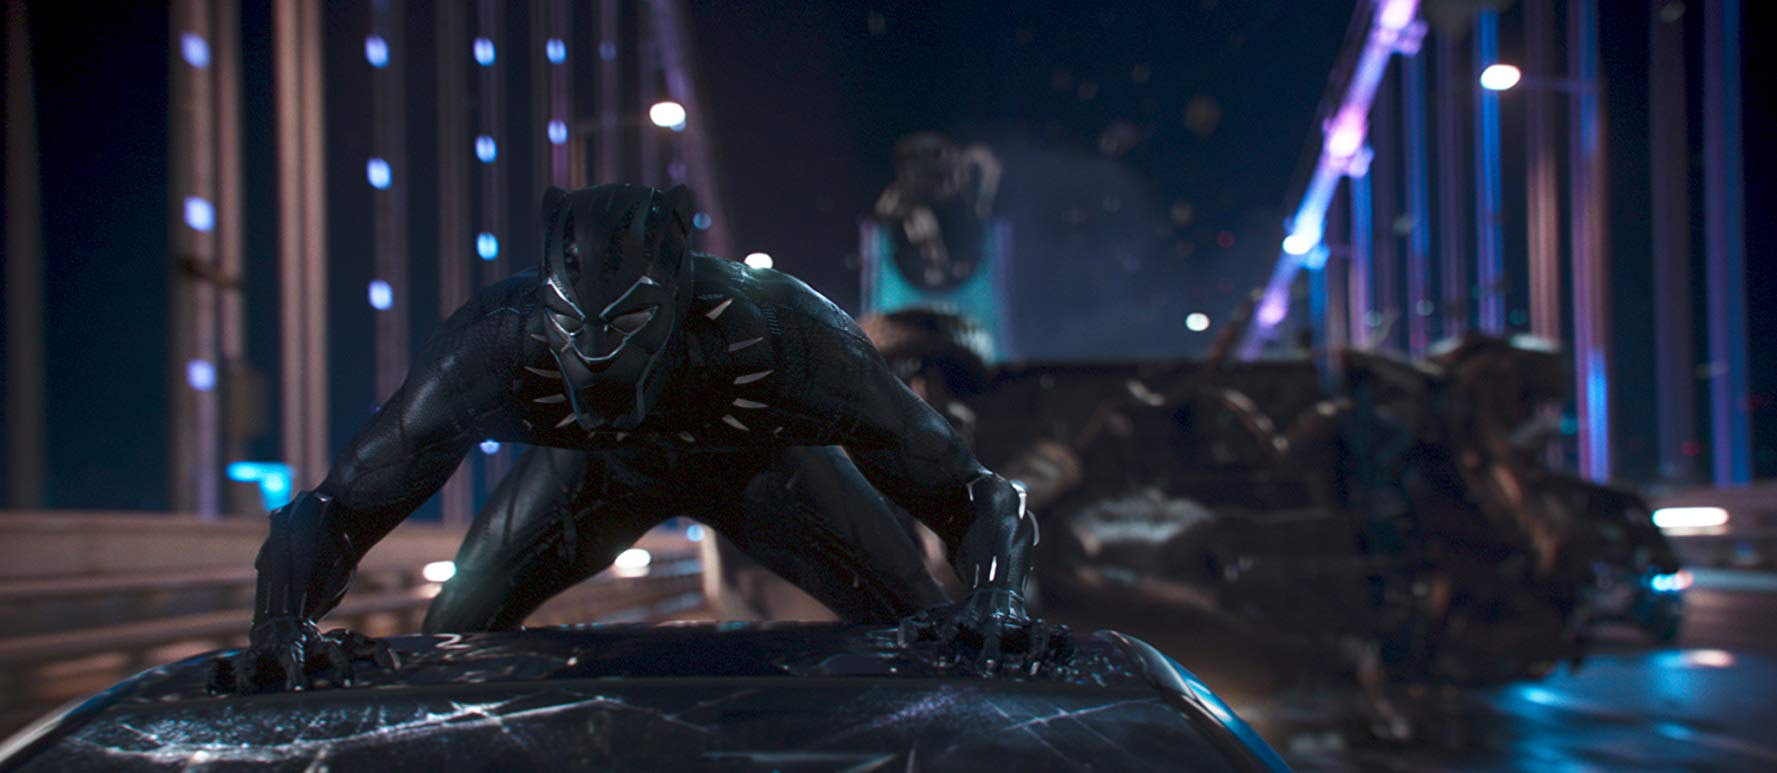 black panther - a scientist can be a superhero